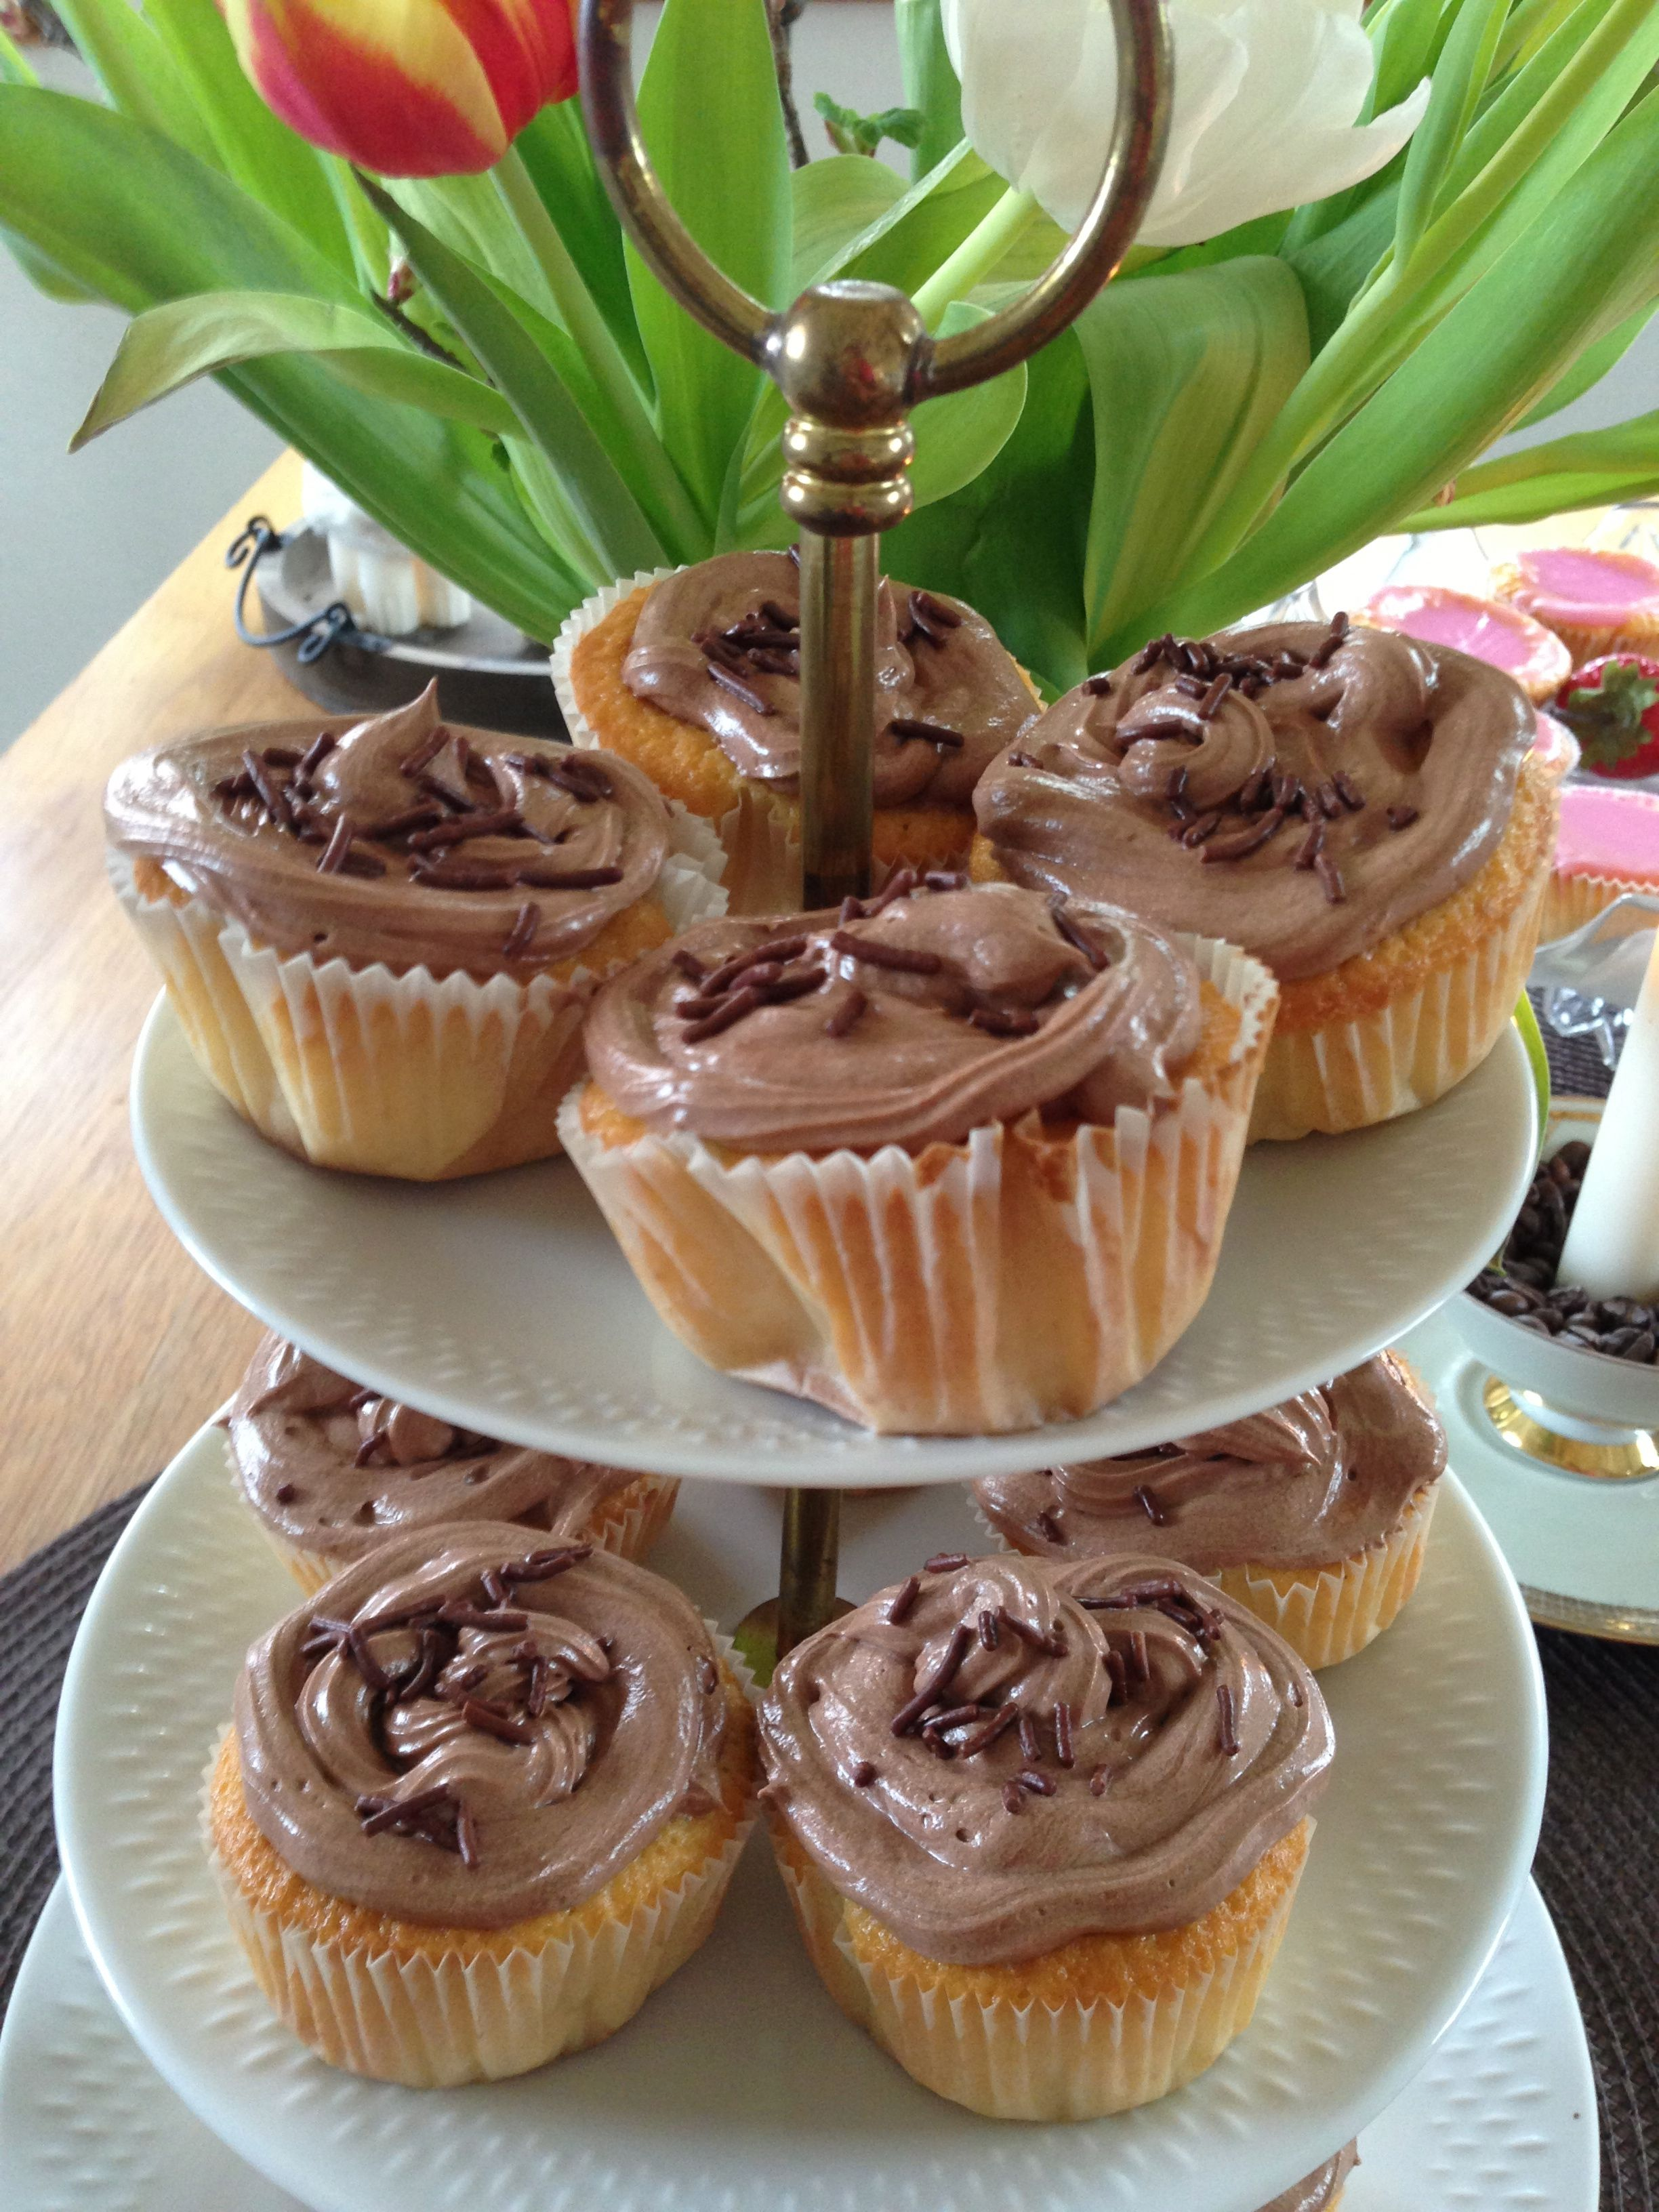 selbstgemachte Vanille Cupcakes mit Nutella Frosting